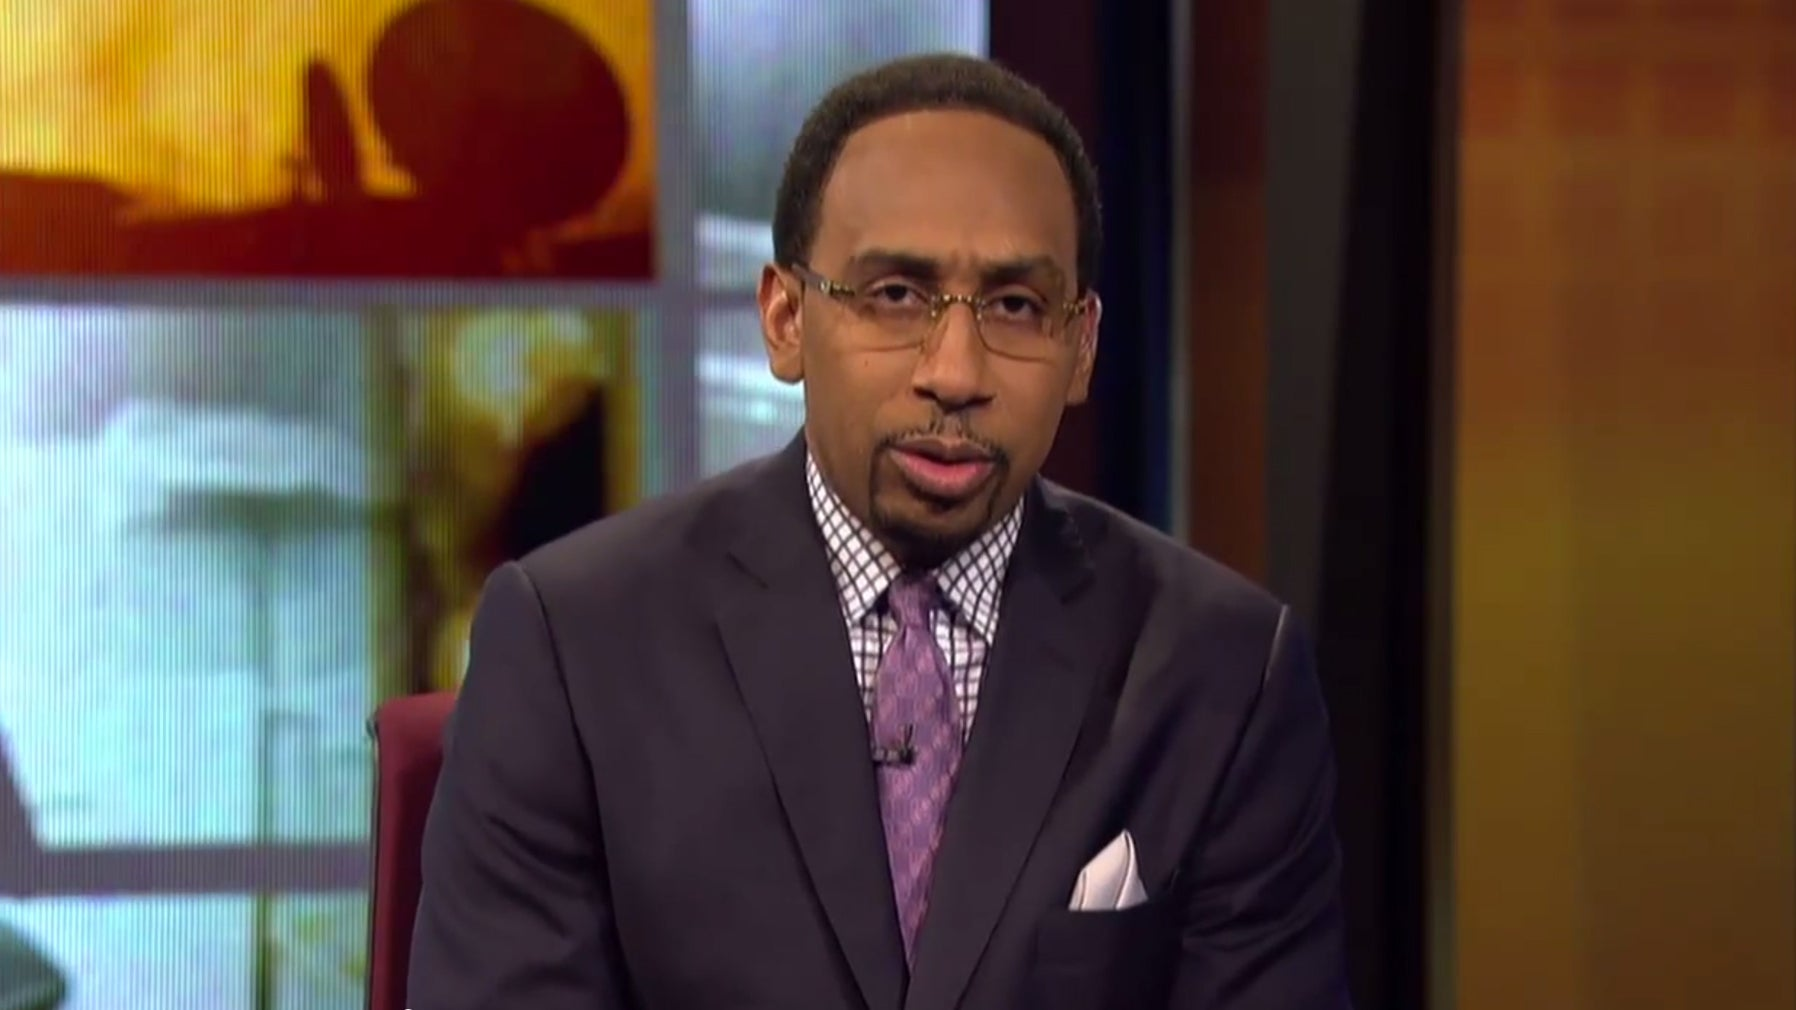 Stephen A. Smith Apologizes for Comments About Domestic Violence